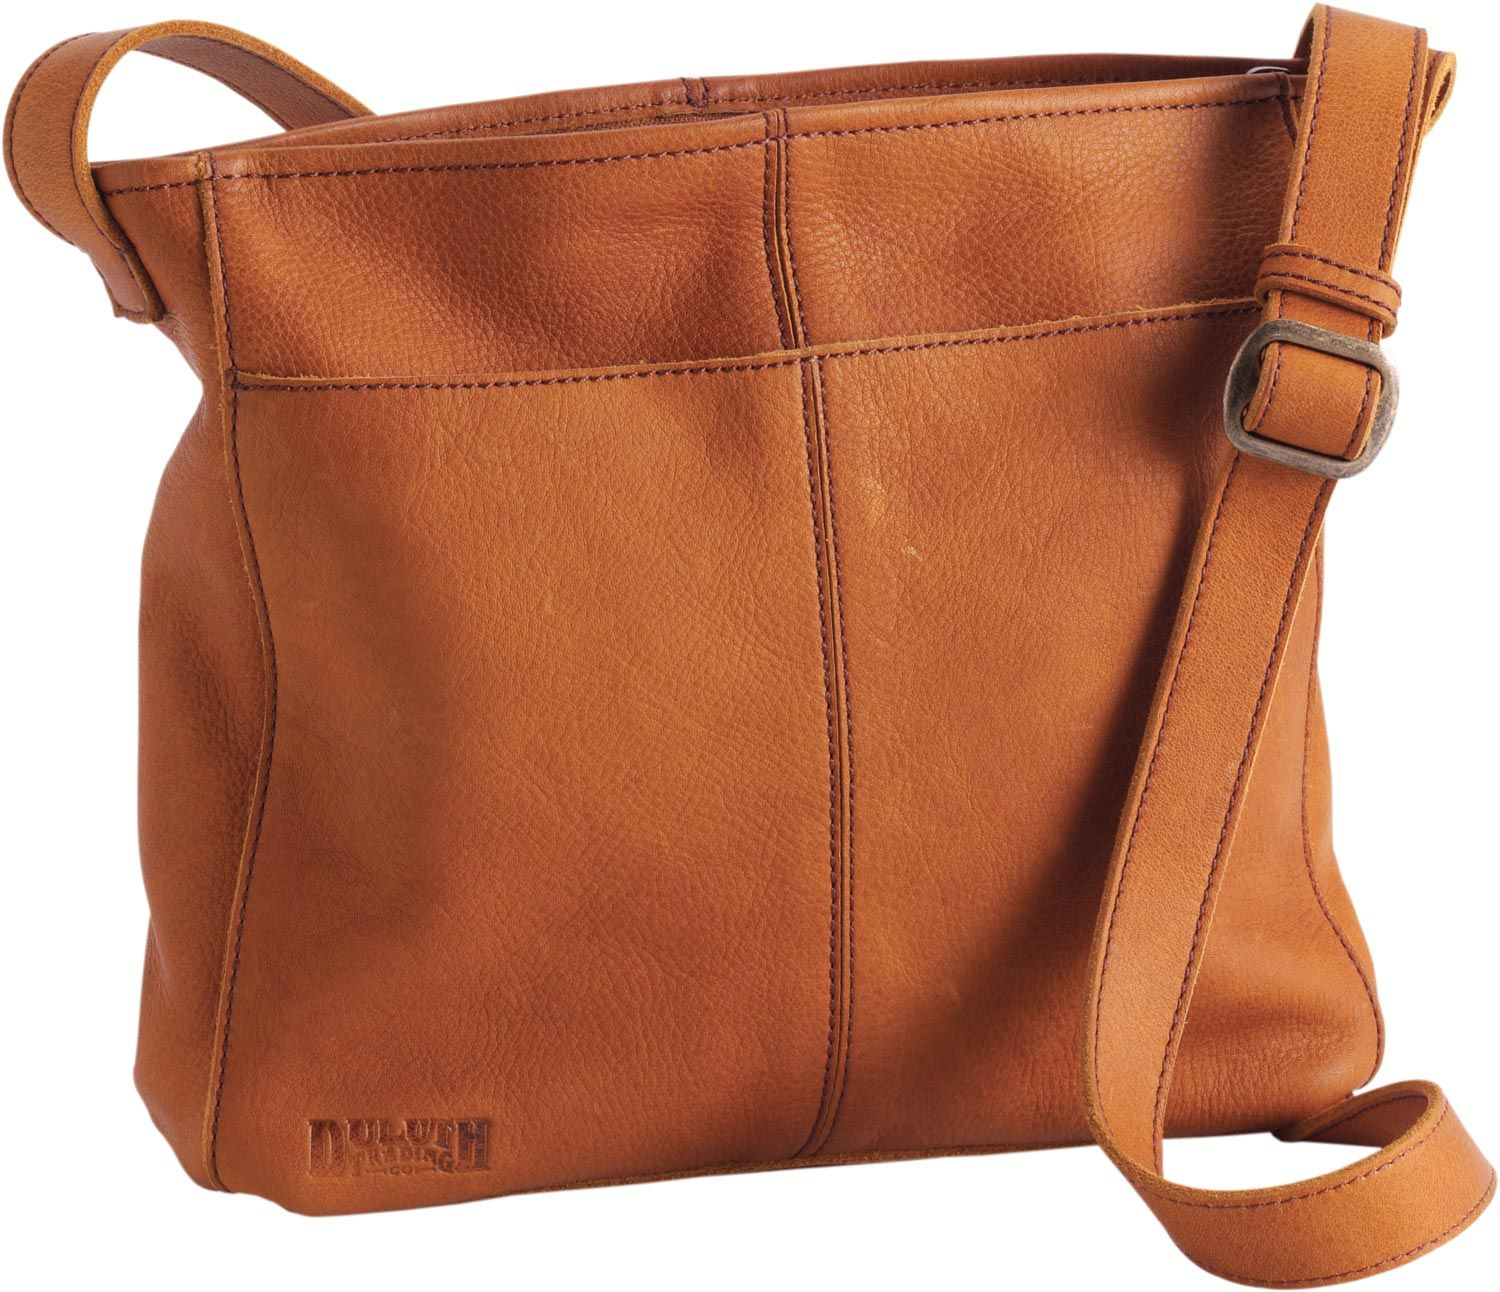 The Womens Lifetime Leather Medium Sling Bag is big enough to hold ...